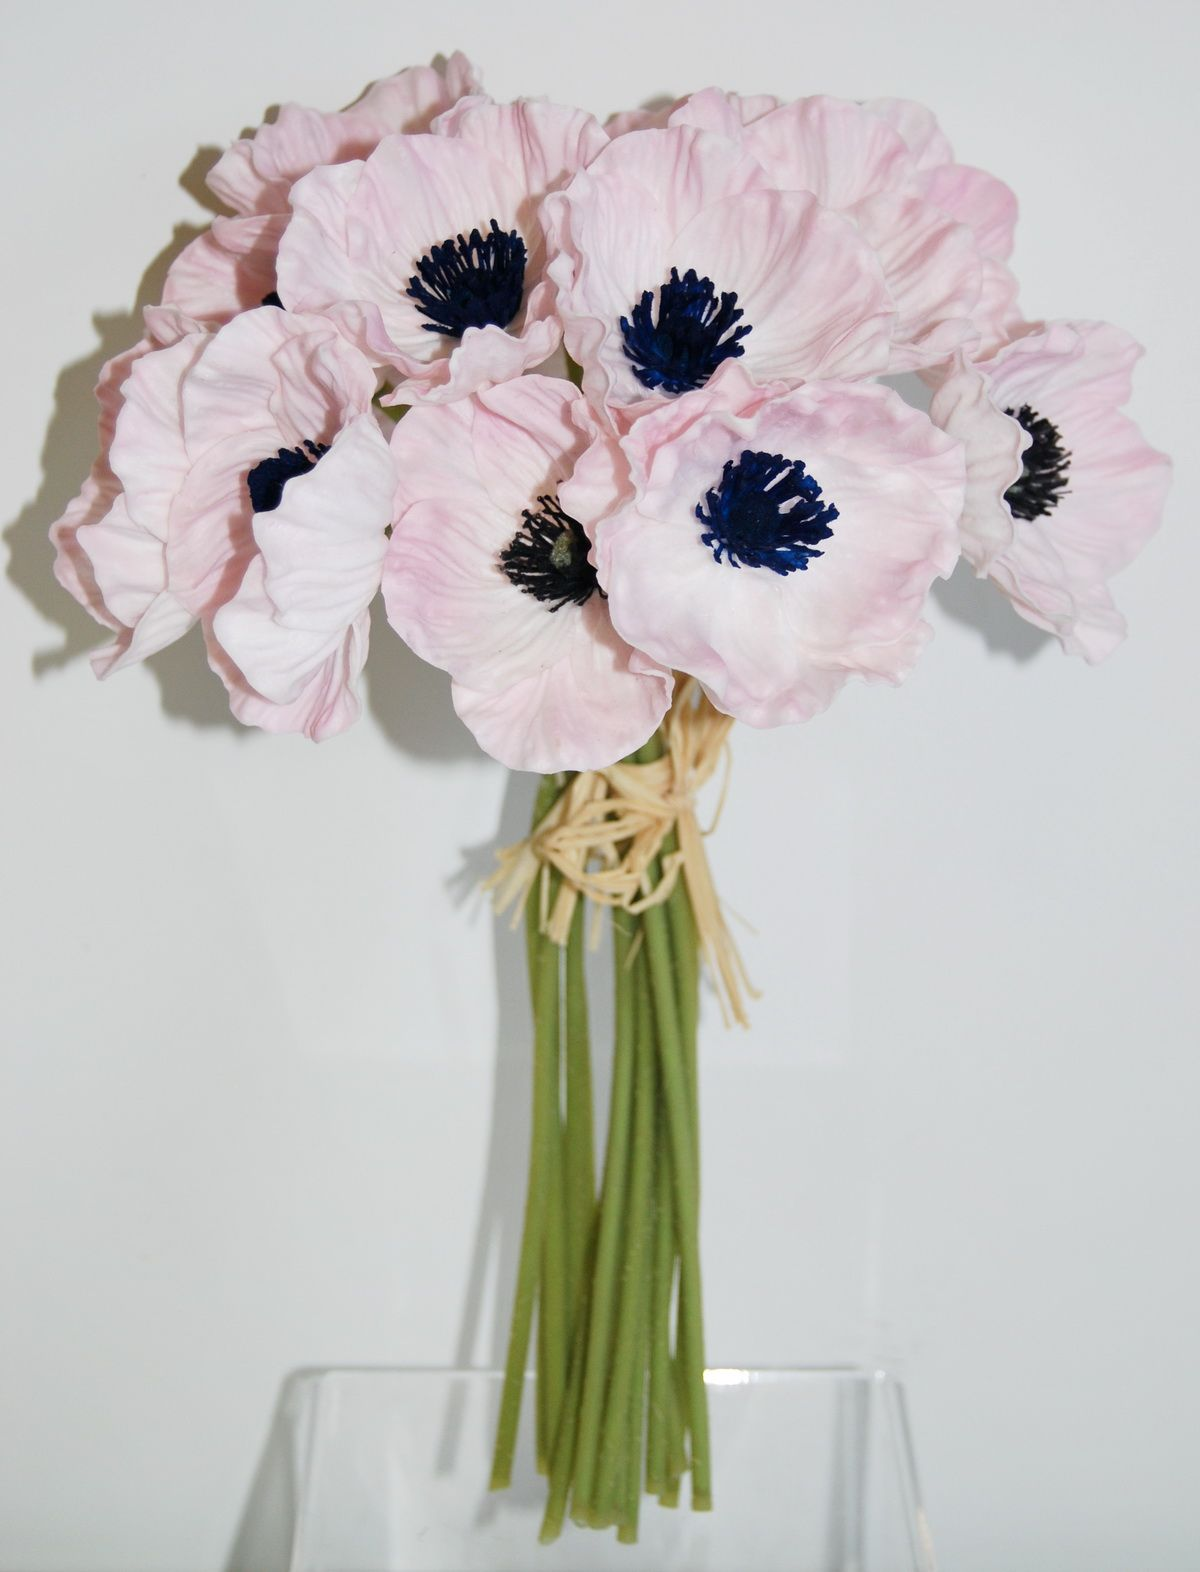 Wb221lp real touch poppy bouquet pink real touch flower wb221lp real touch poppy bouquet pink izmirmasajfo